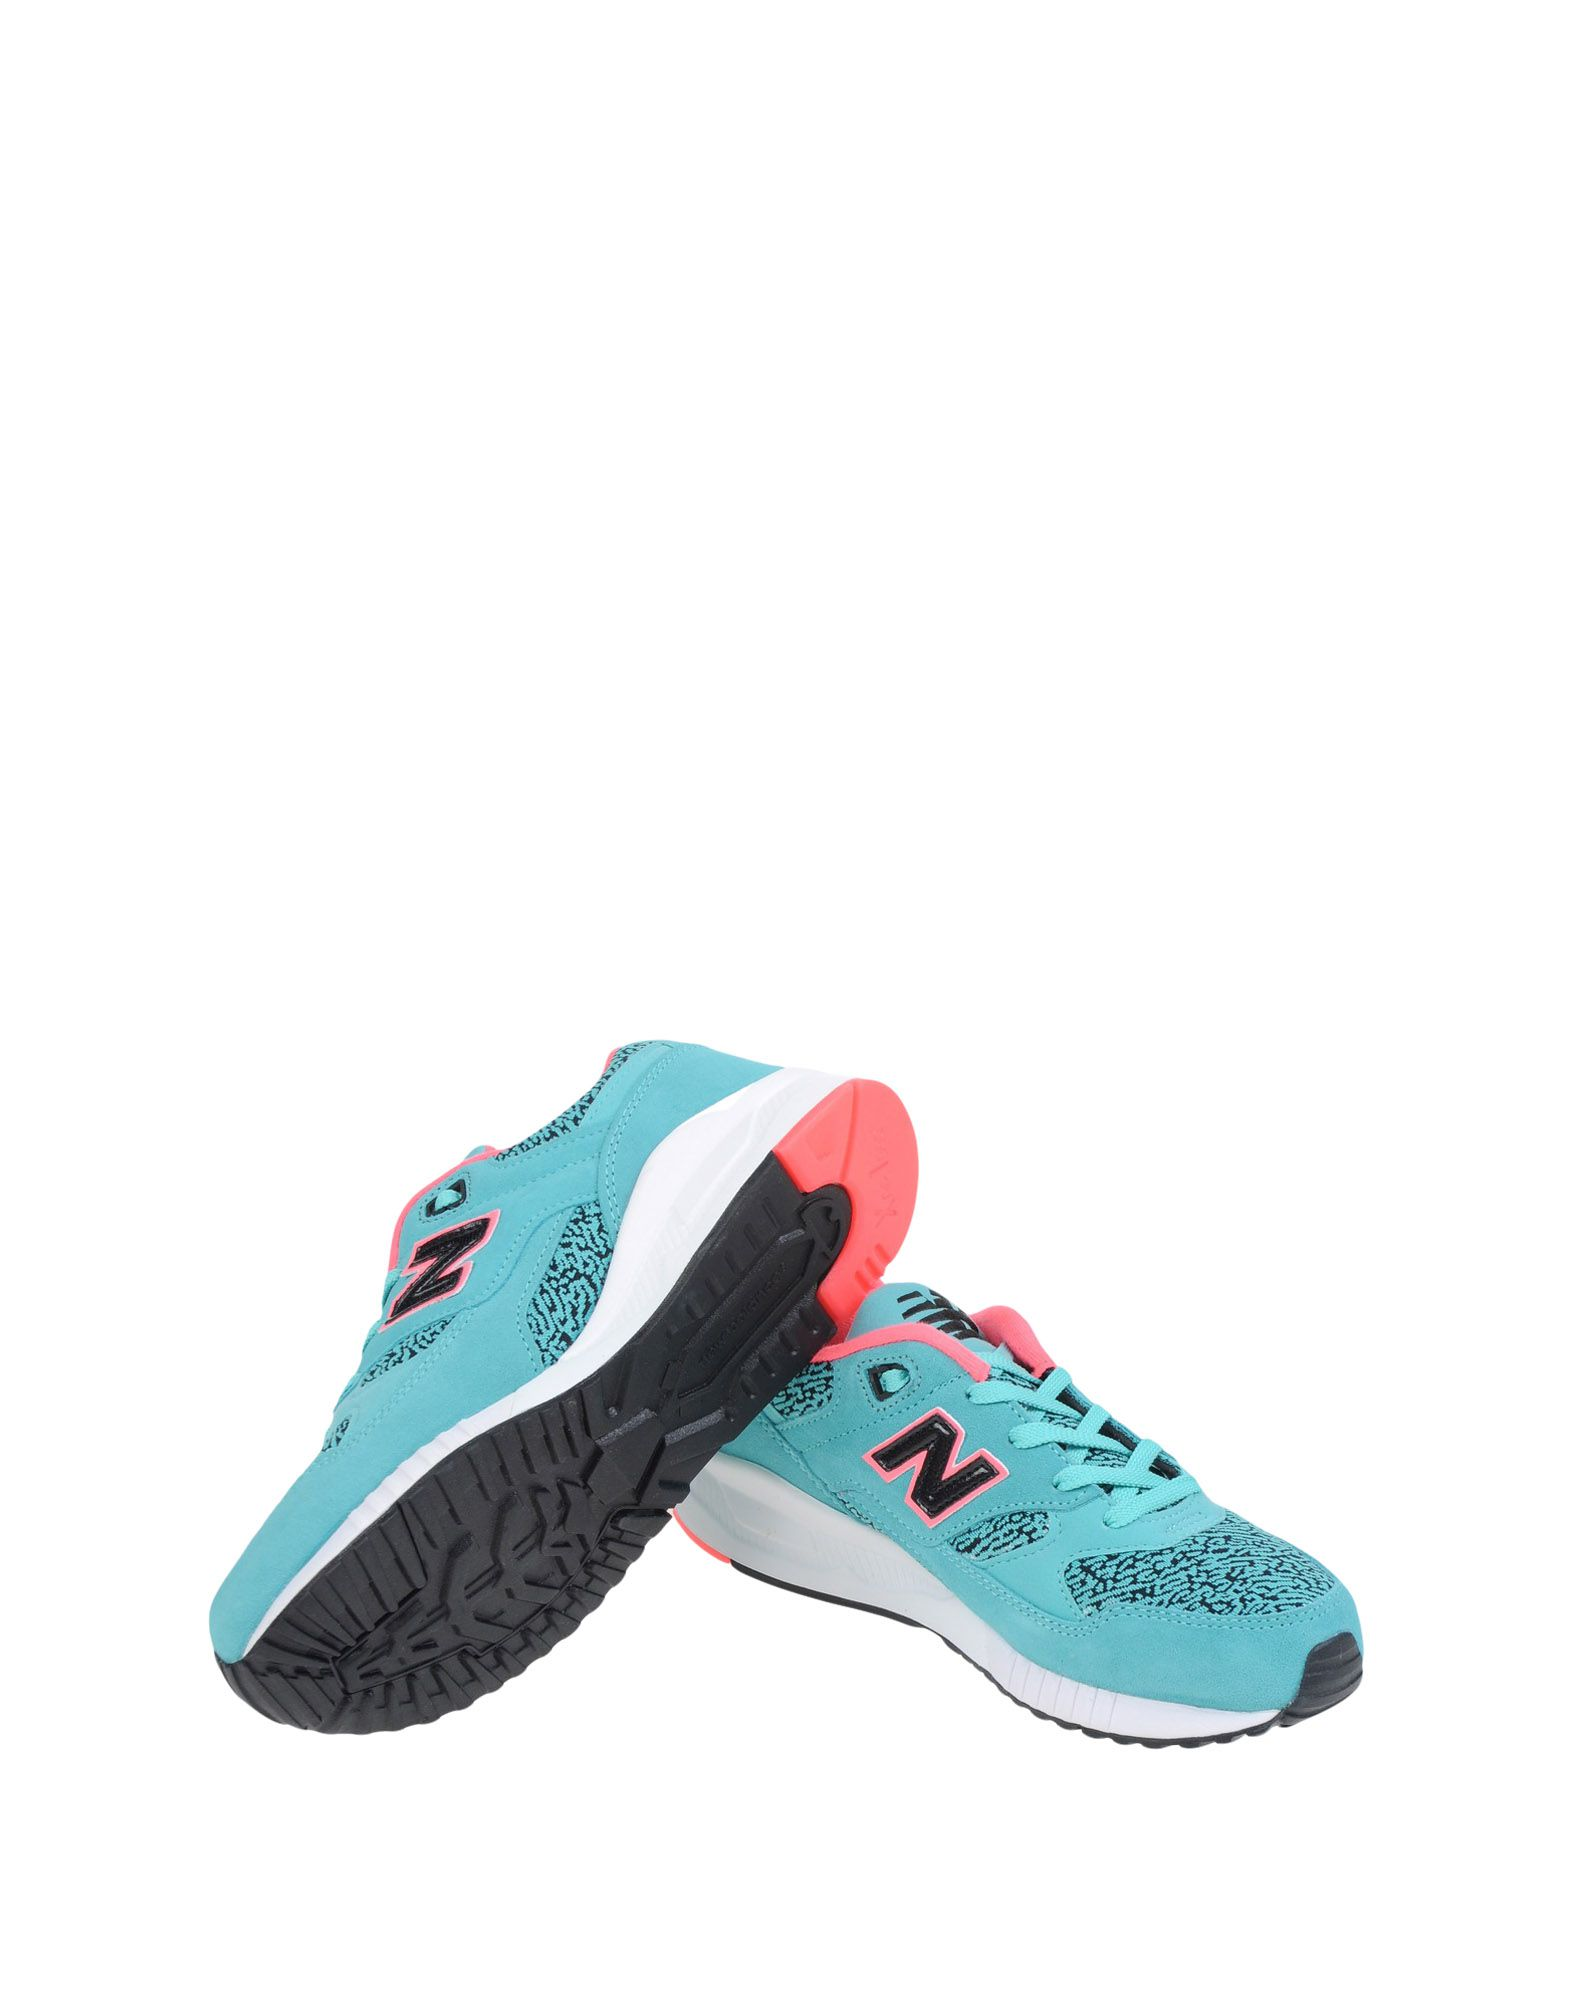 New Balance 530 530 530 Printed Upper - Sneakers - Women New Balance Sneakers online on  United Kingdom - 11104070AW 773842